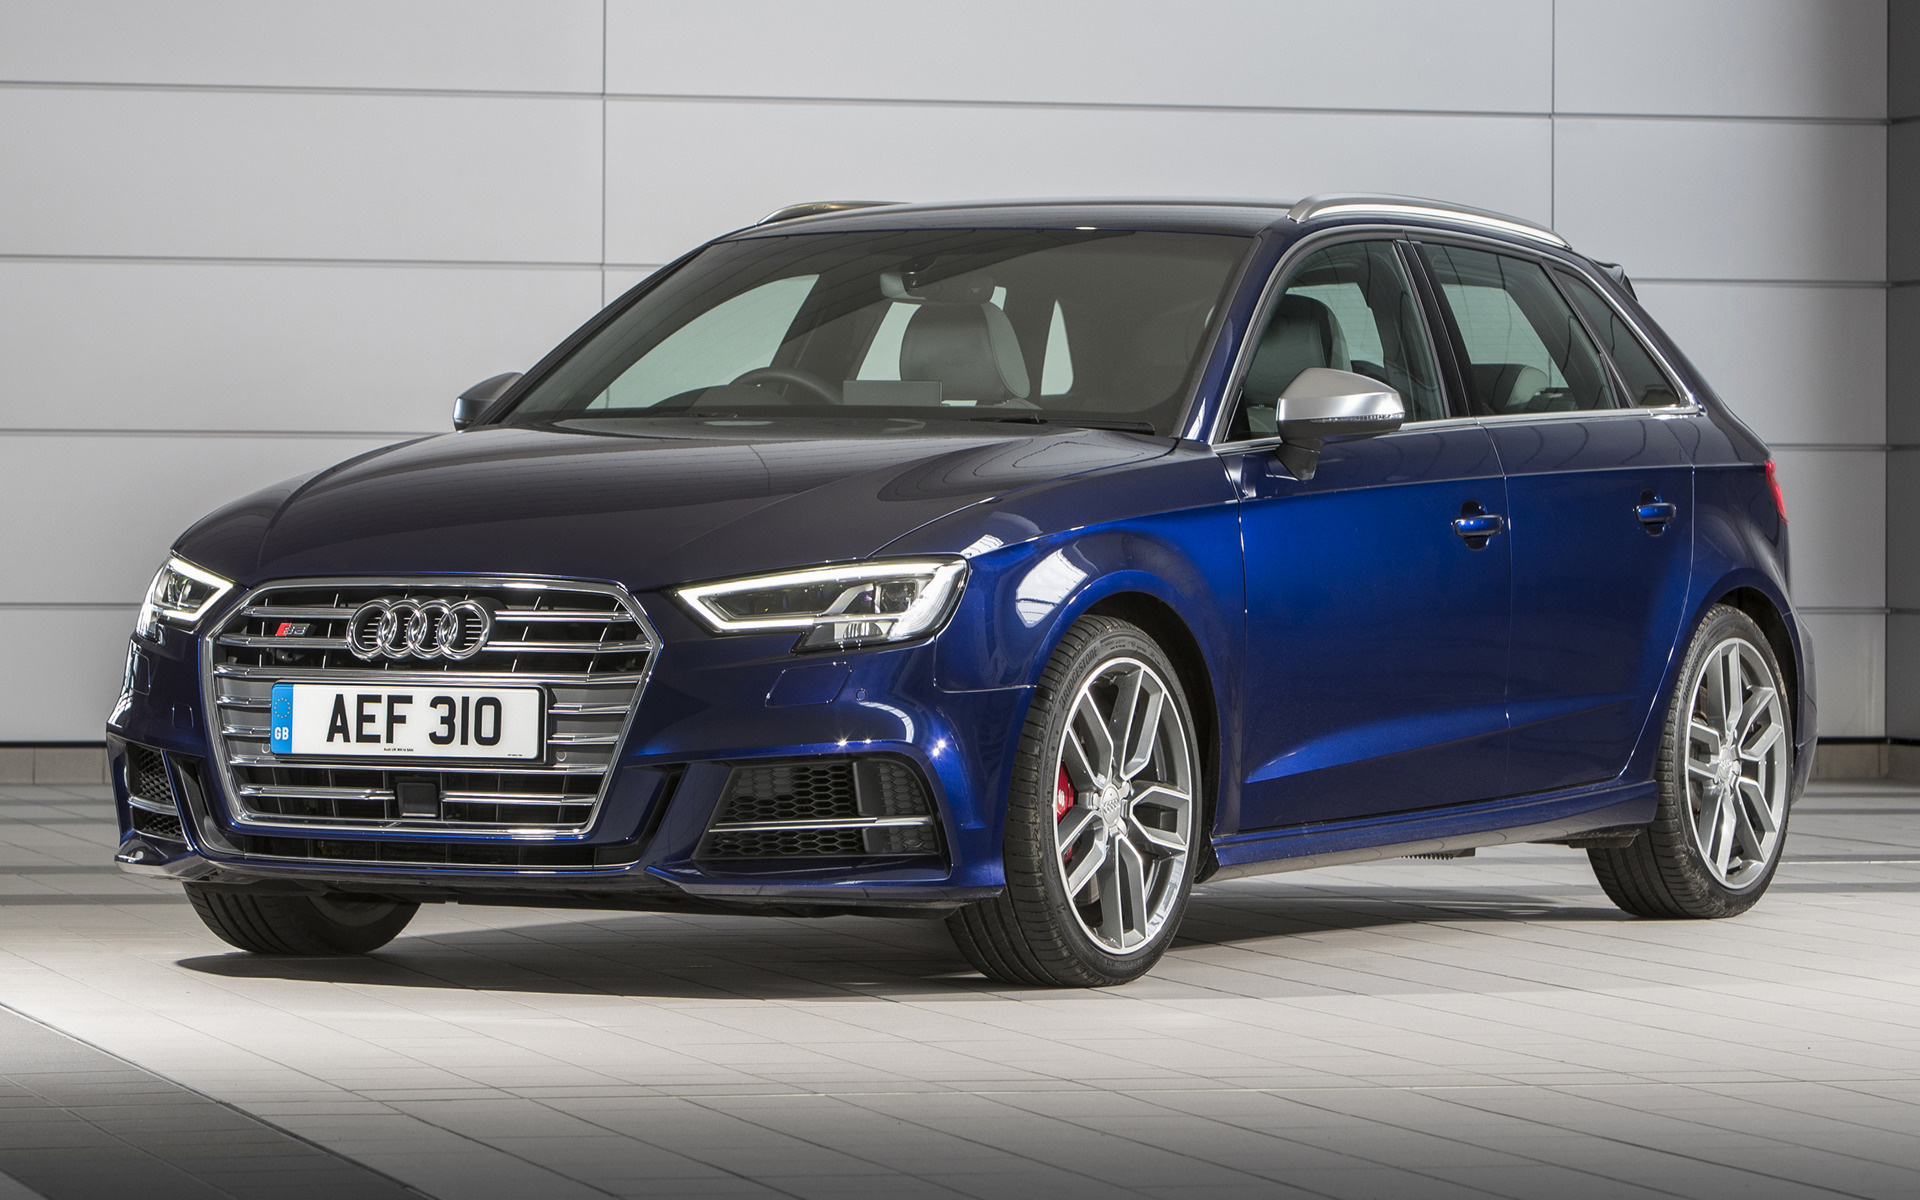 2016 Audi S3 Sportback (UK) - Wallpapers and HD Images ...